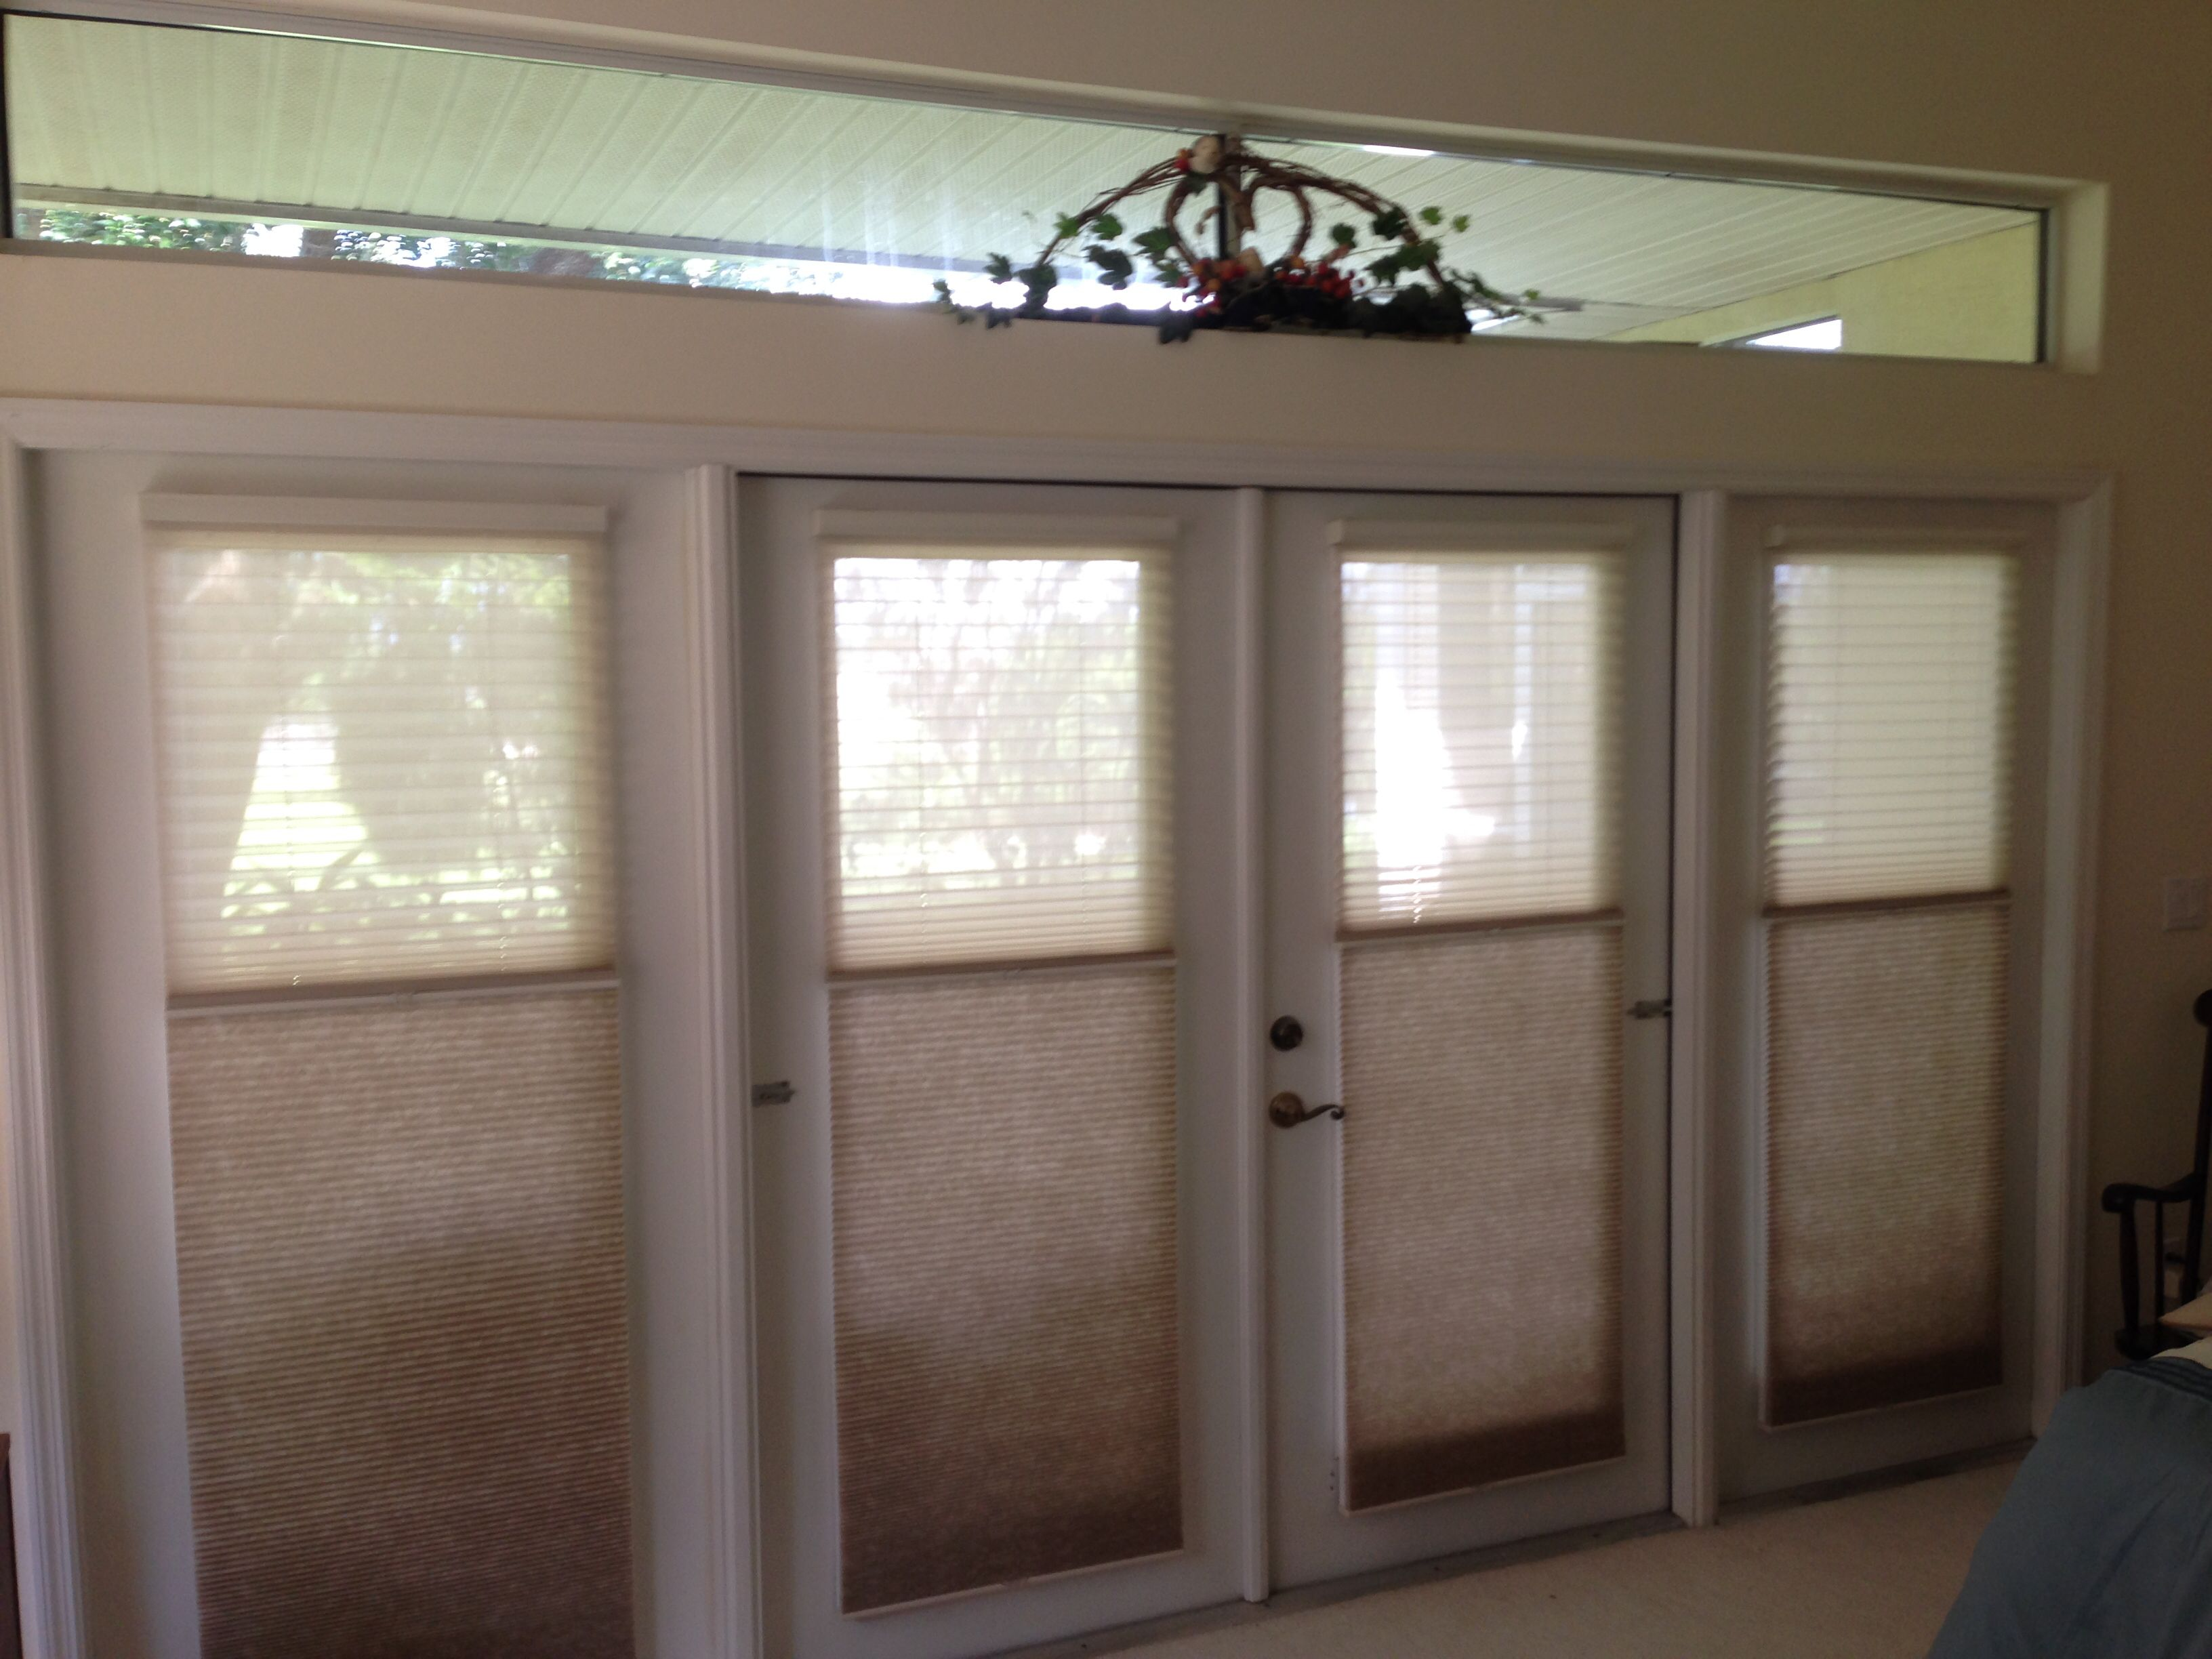 Unison cellular shades combine sheer on top and light filtering